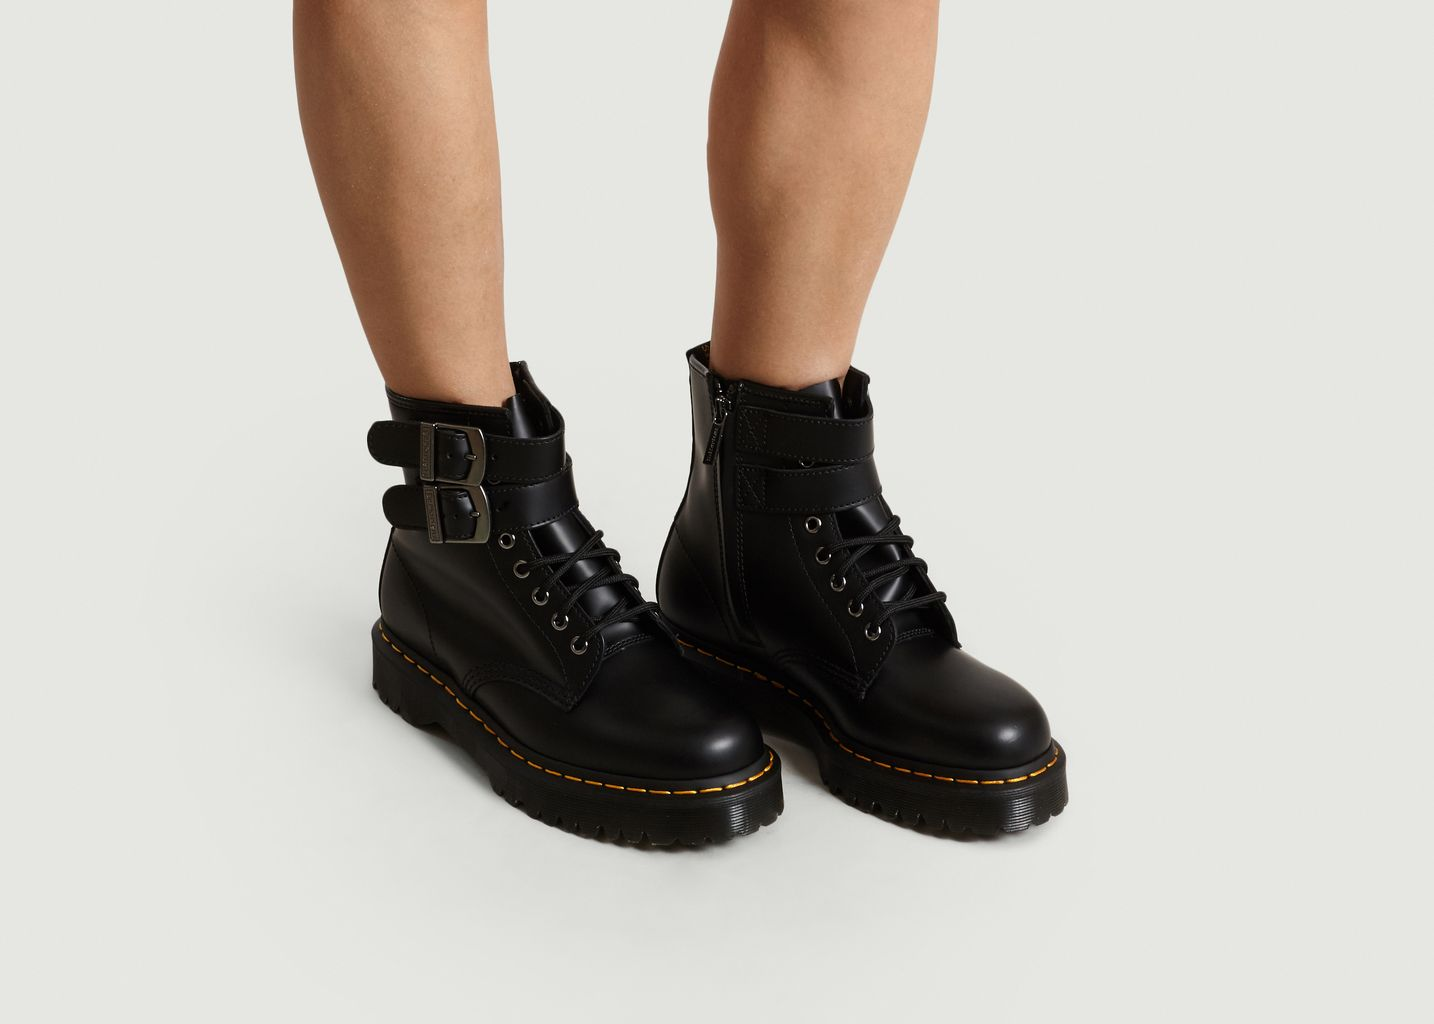 on wholesale best authentic 60% discount 1460 Alternative Boots